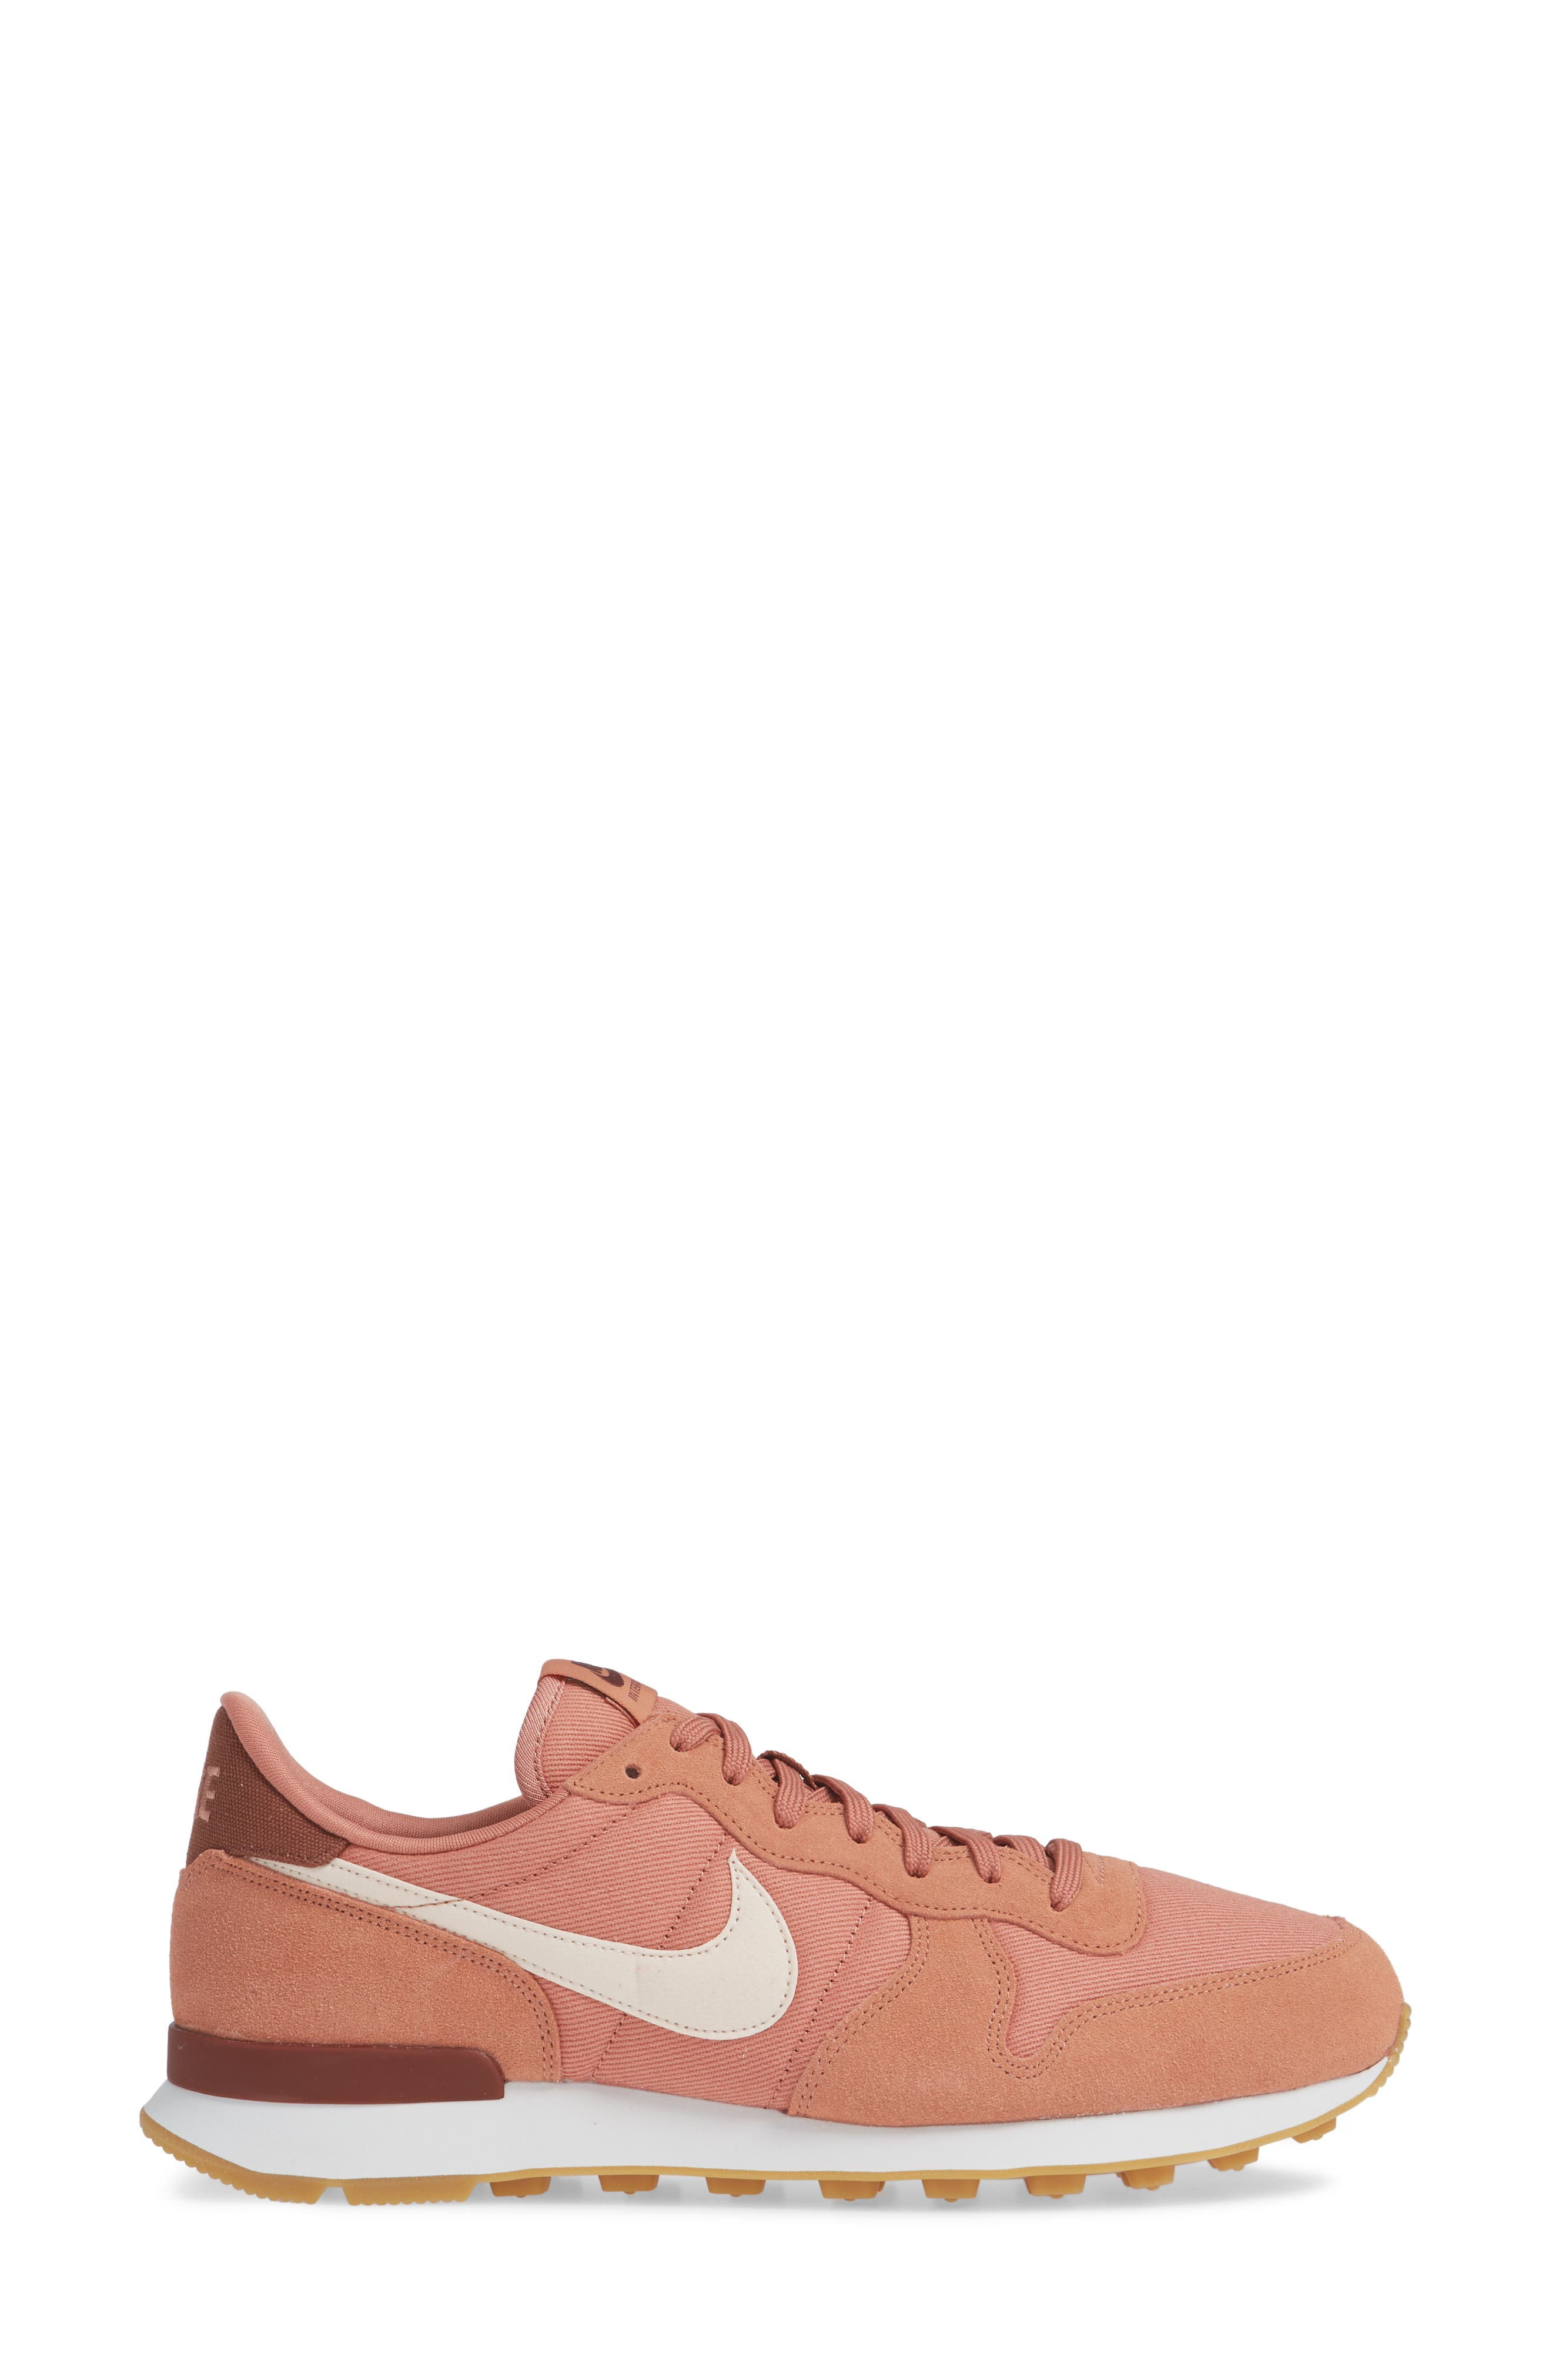 'Internationalist' Sneaker,                             Alternate thumbnail 3, color,                             950